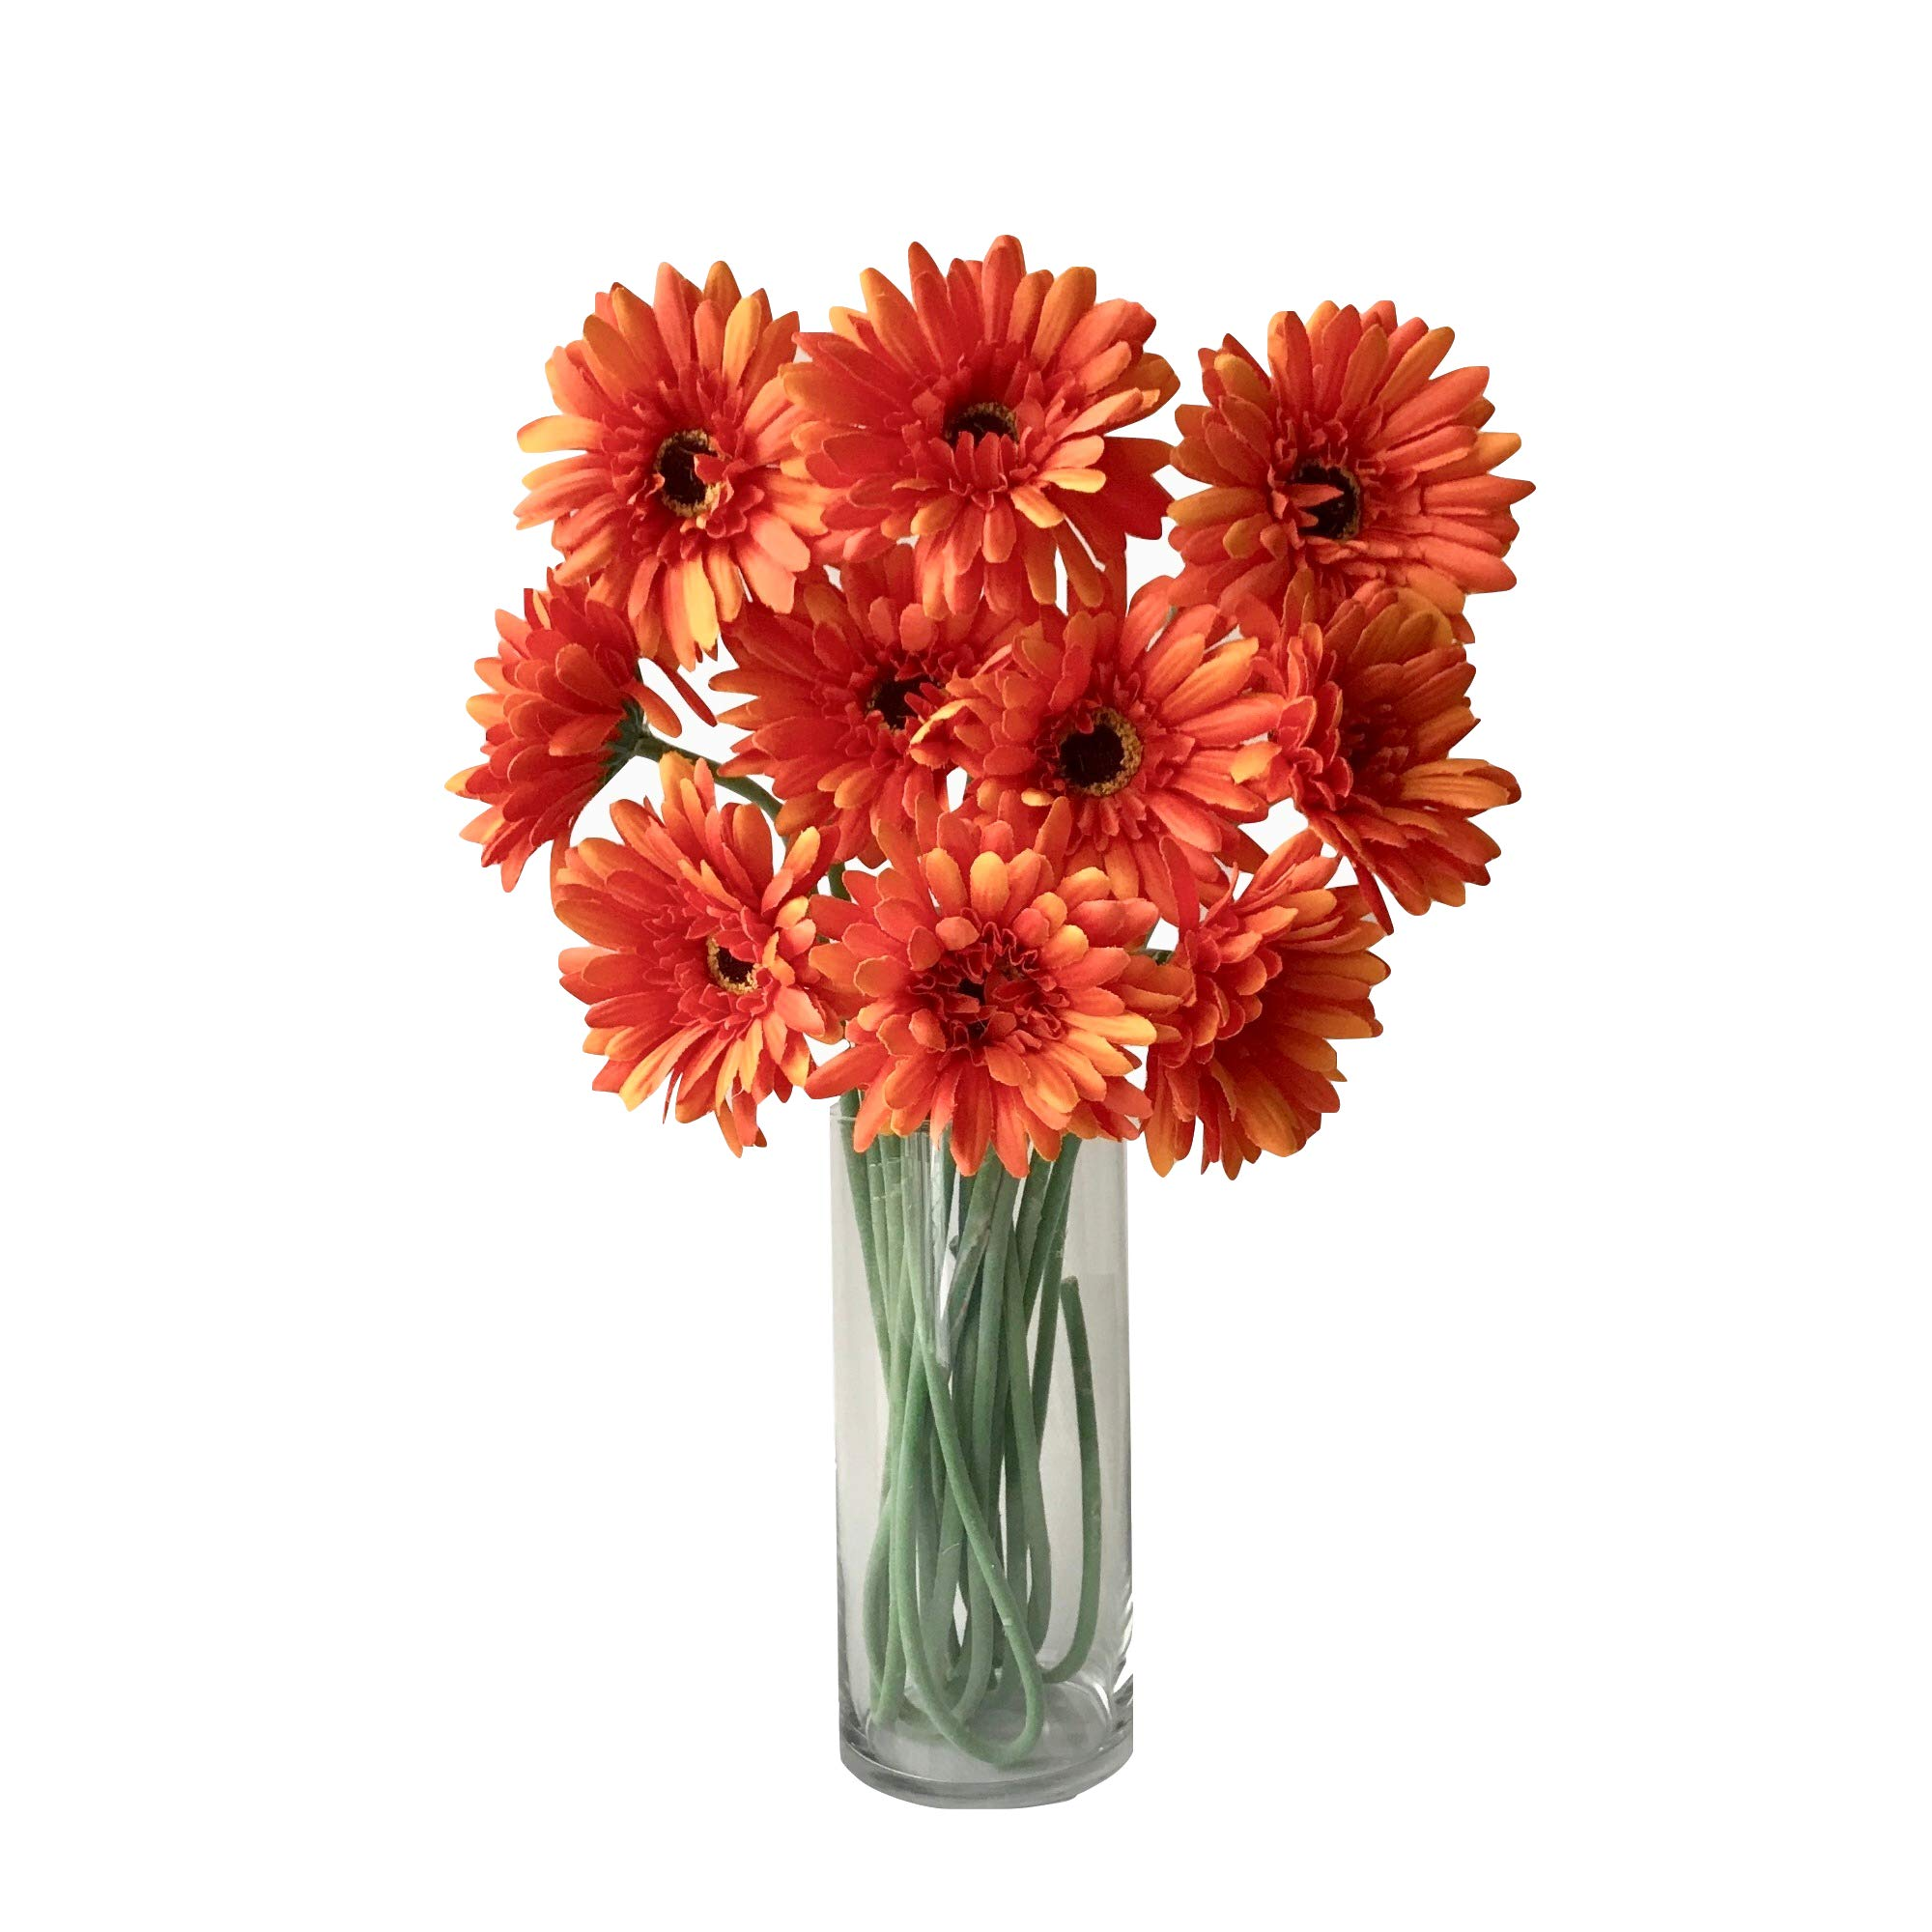 Raes-Garden-Artificial-Flowers-Realistic-Fake-Flowers-Gerbera-Daisy-Bridal-Wedding-Bouquet-for-Home-Garden-Wedding-Party-Decorations-10-Pcs-Orange